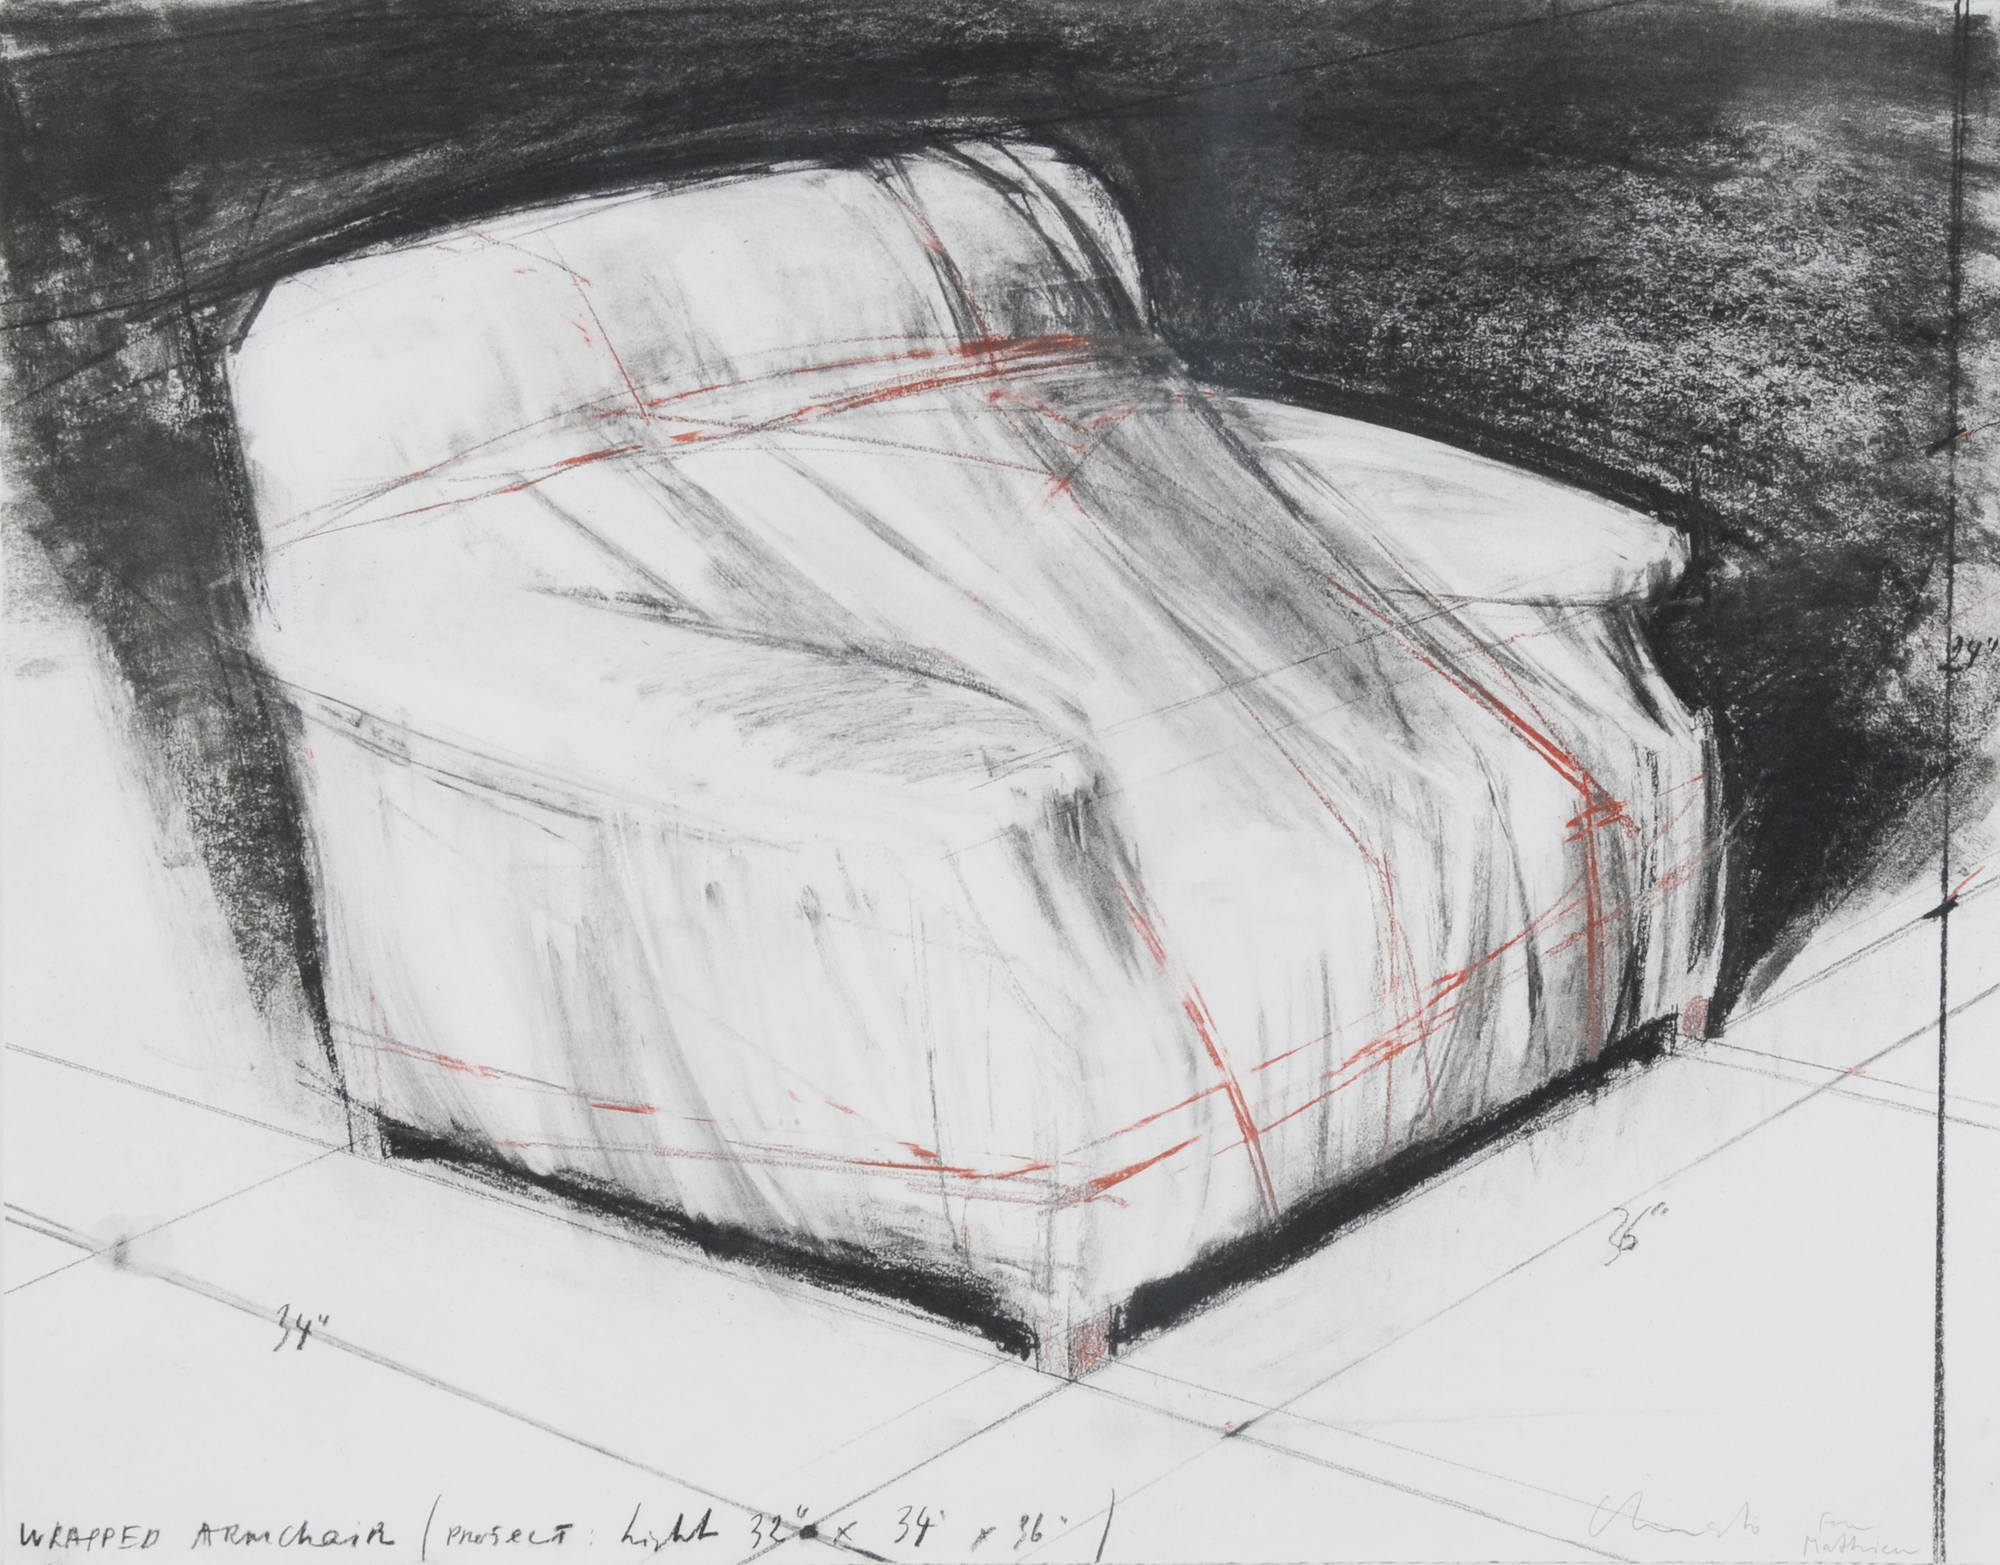 Christo, Wrapped Armchair, Project